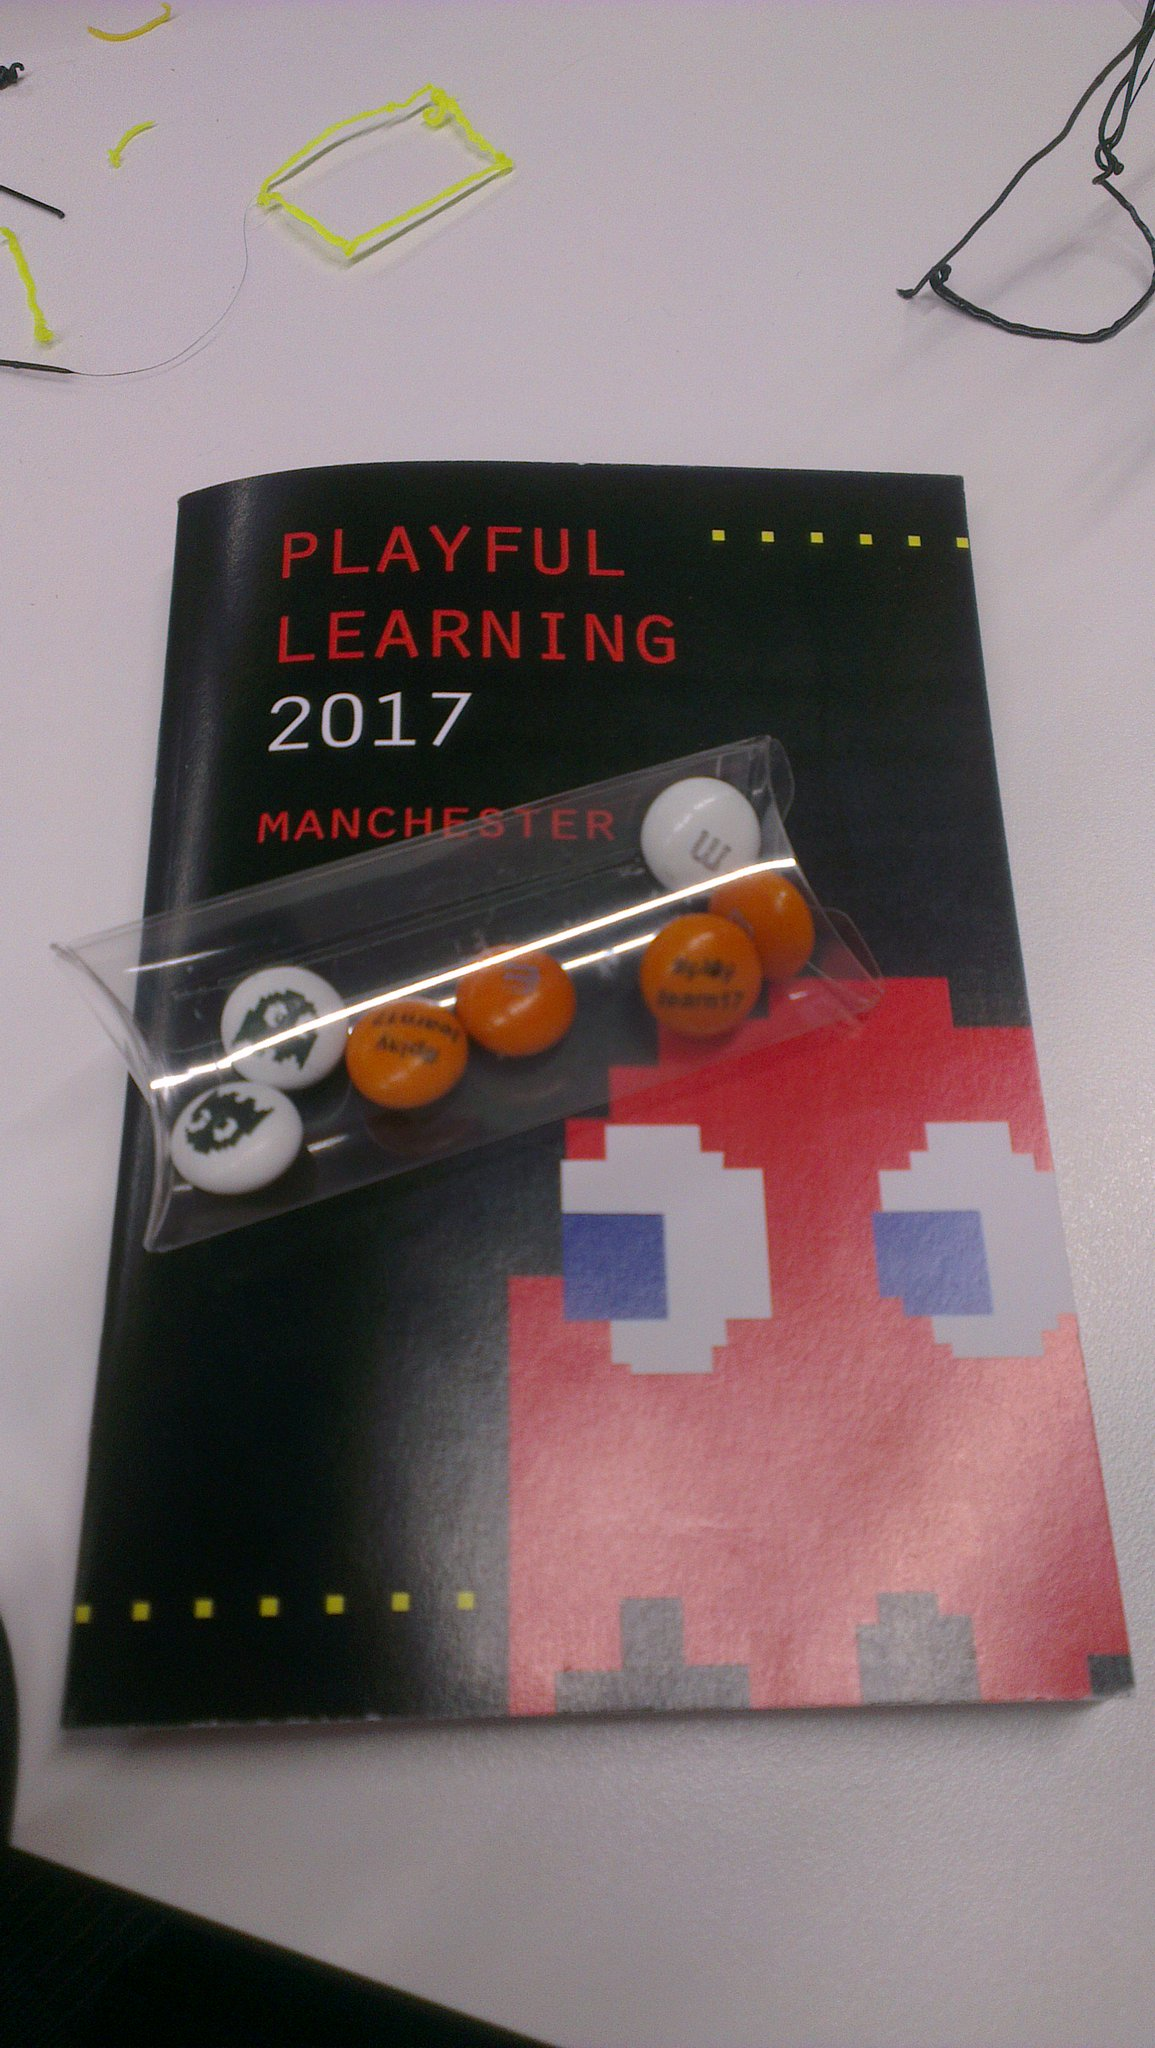 Great & fascinating day at #playlearn17 lovin the custom m&m's! https://t.co/jwntu3W2ej